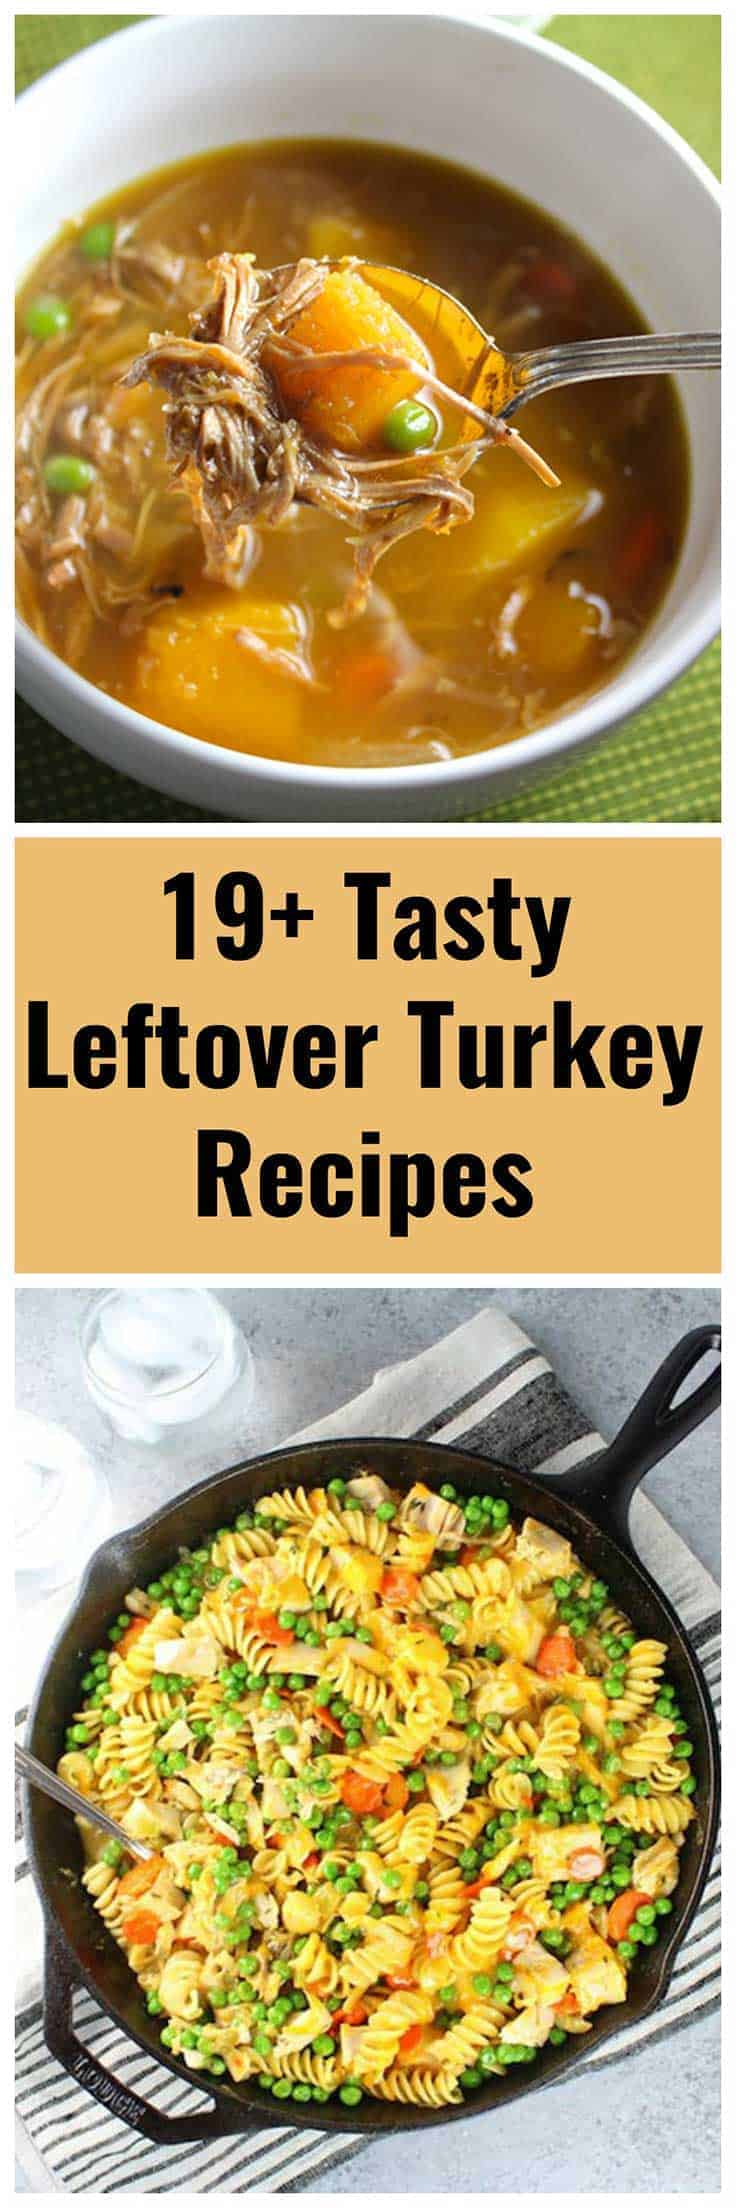 collage with two images of leftover turkey recipes.